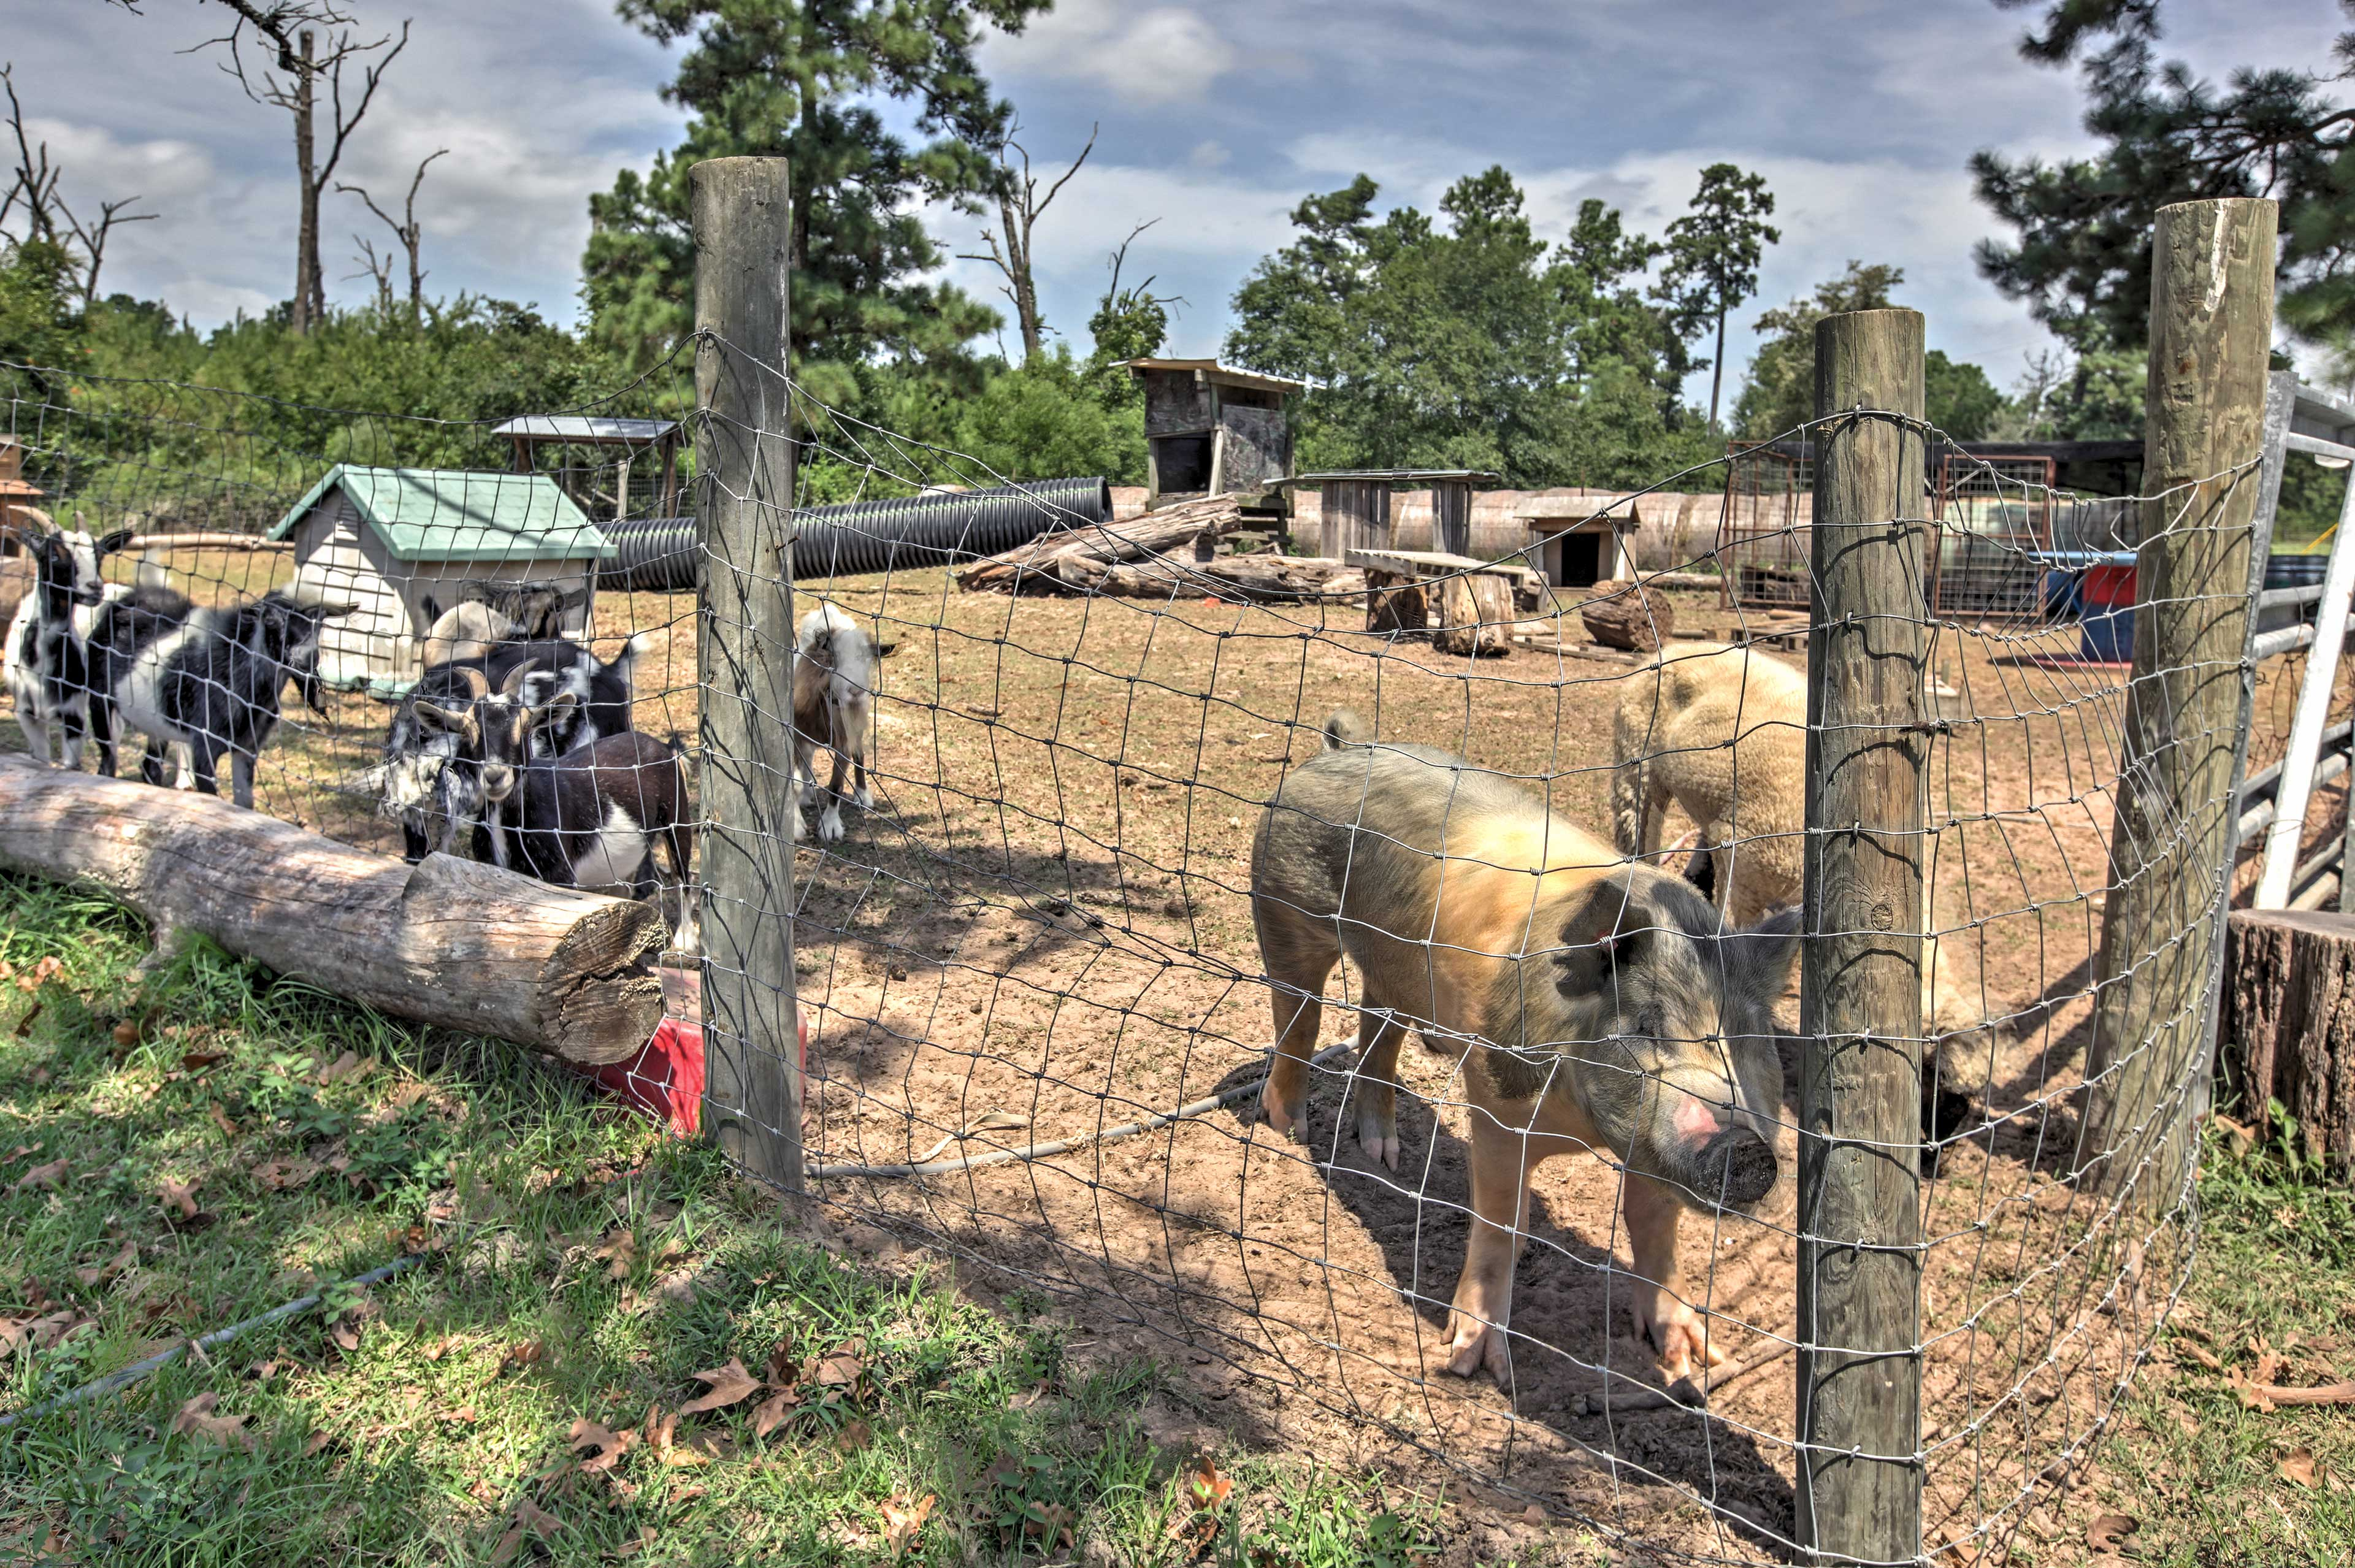 Take a stroll to find the goats and pigs right near this Plantersville cabin.